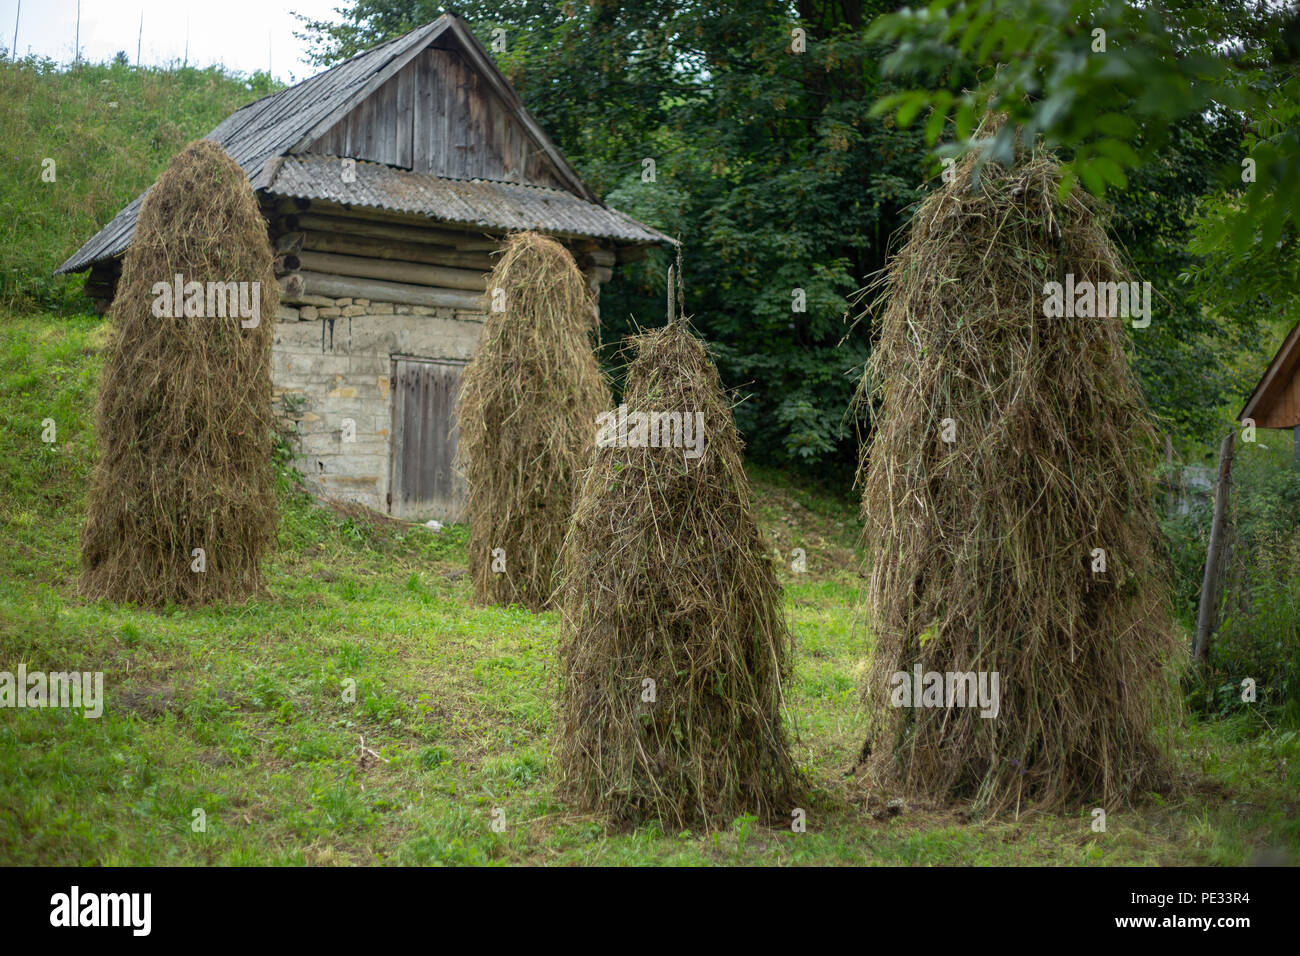 A haystack in the courtyard of a rural house. Traditional farming. Stock for livestock. Carpathians Ukraine - Stock Image